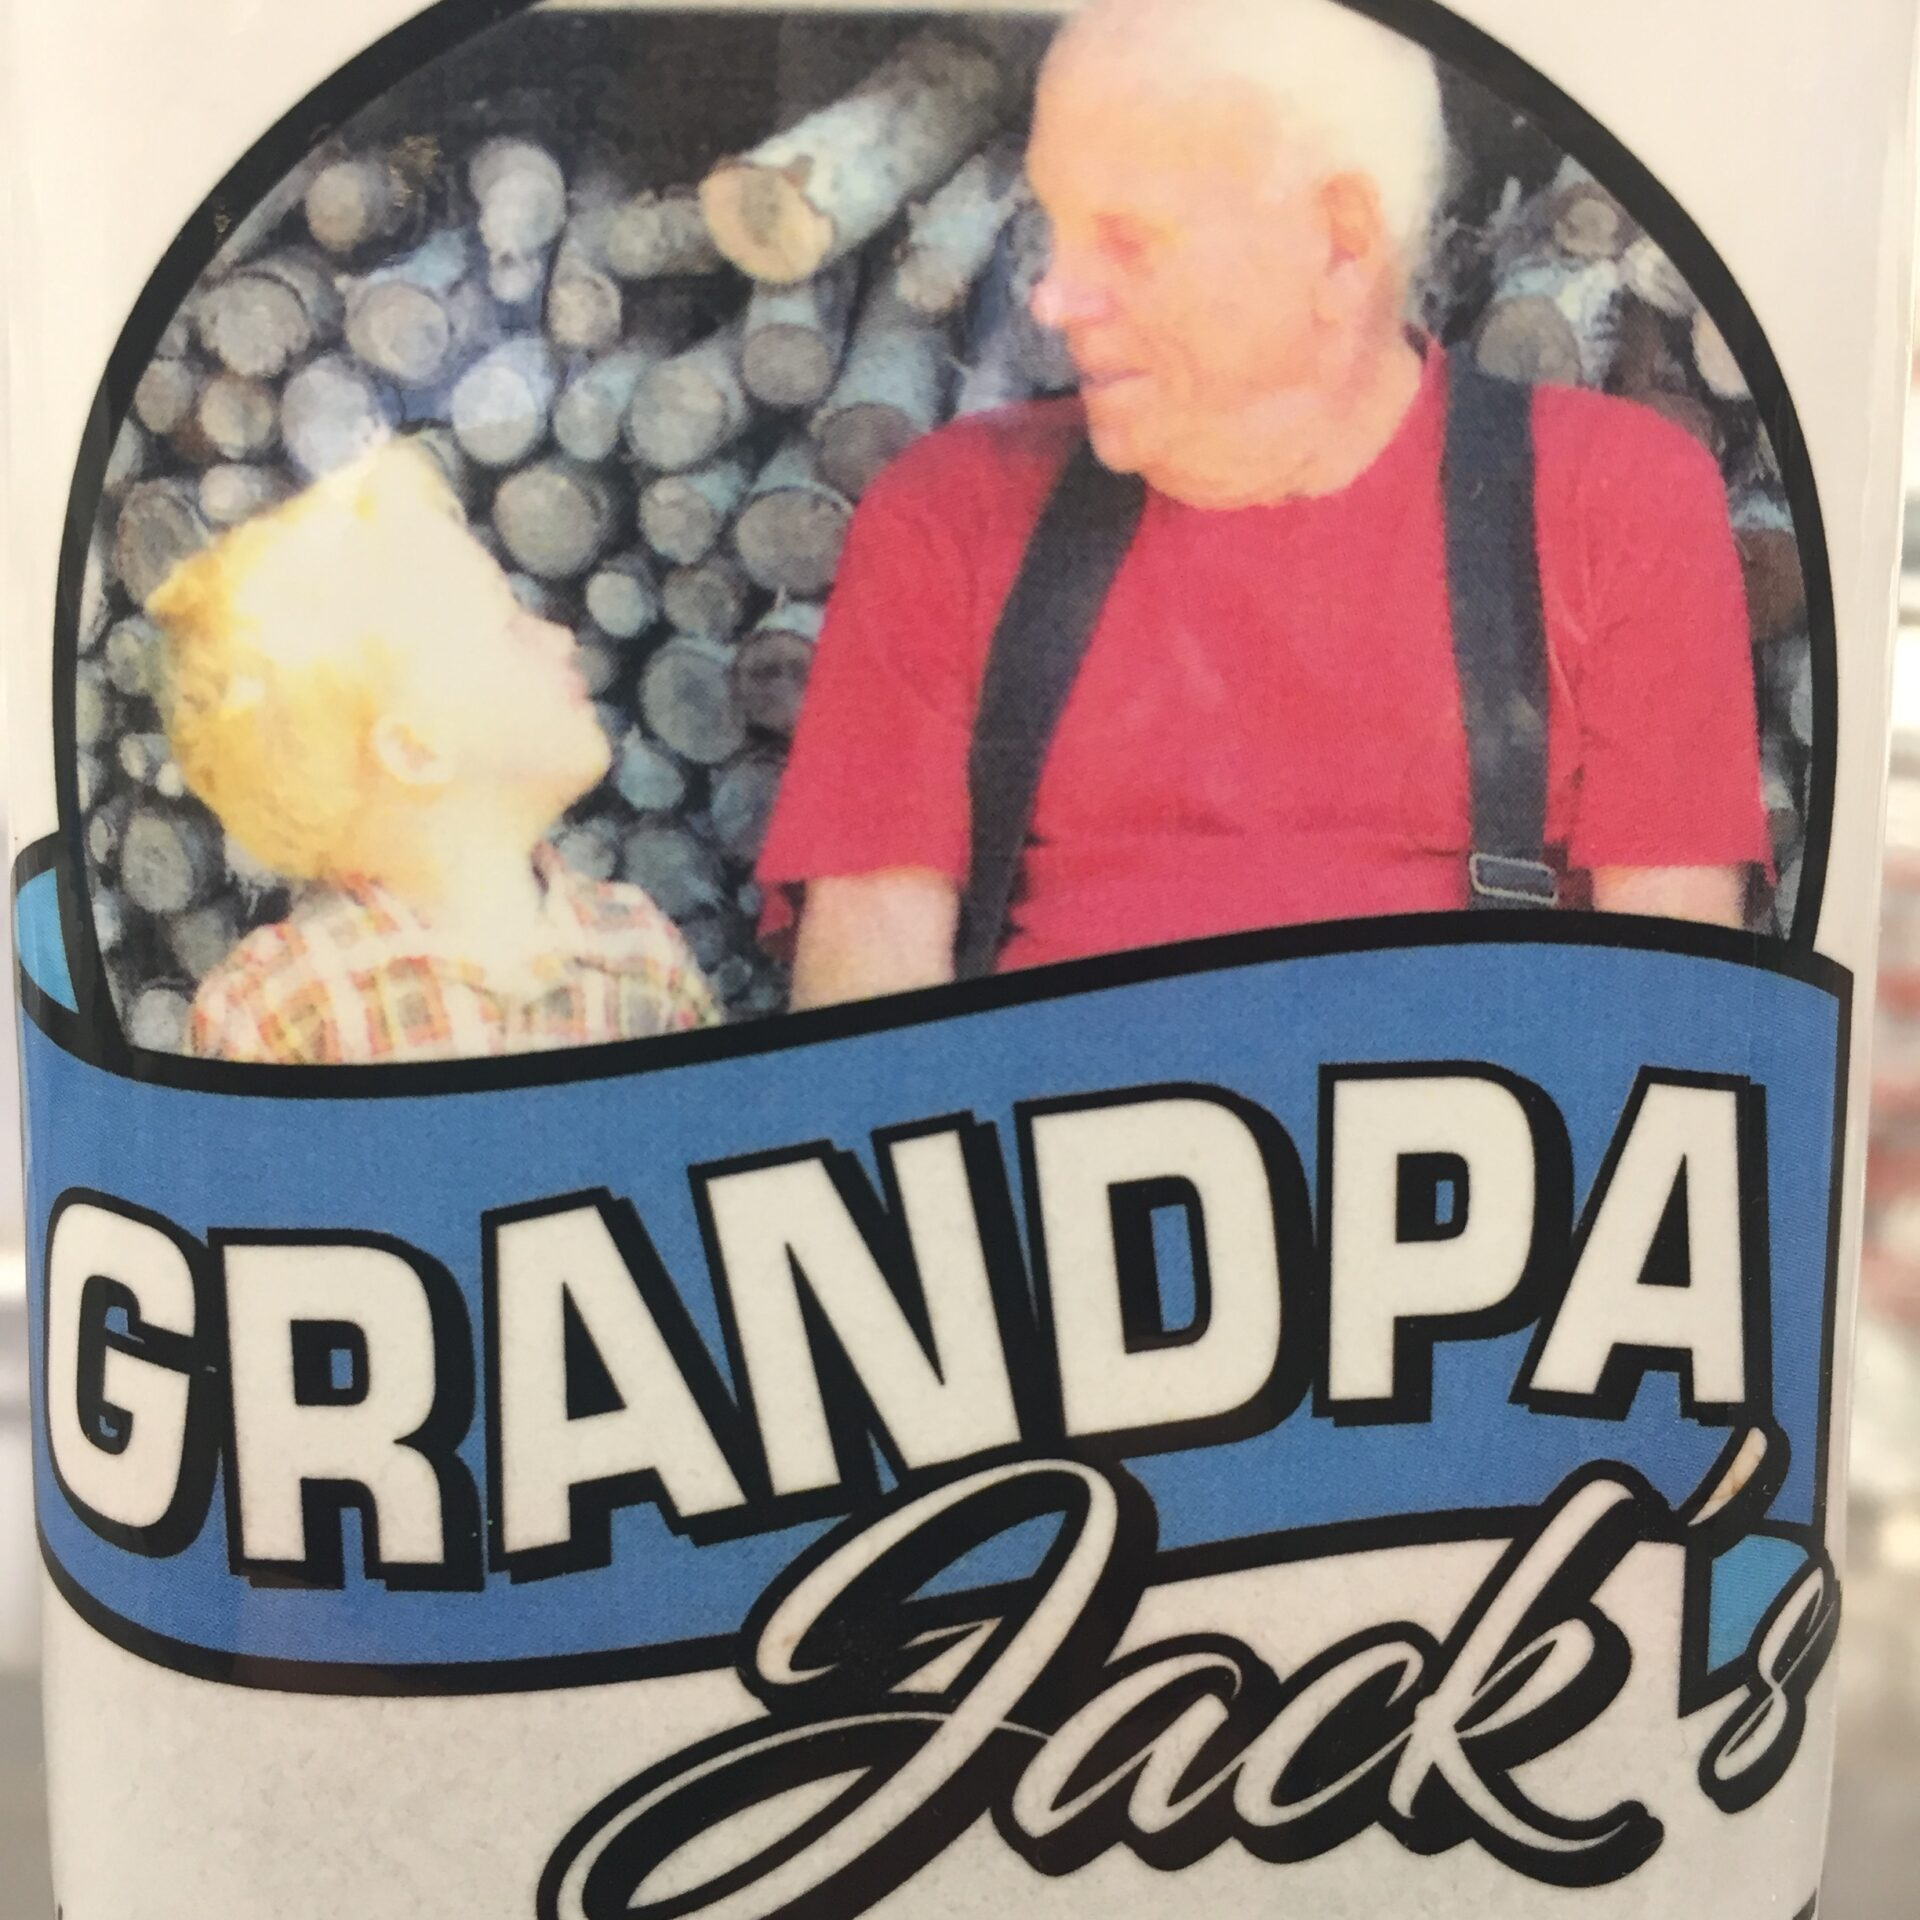 Grandpa jacks cranberry concentrate logo